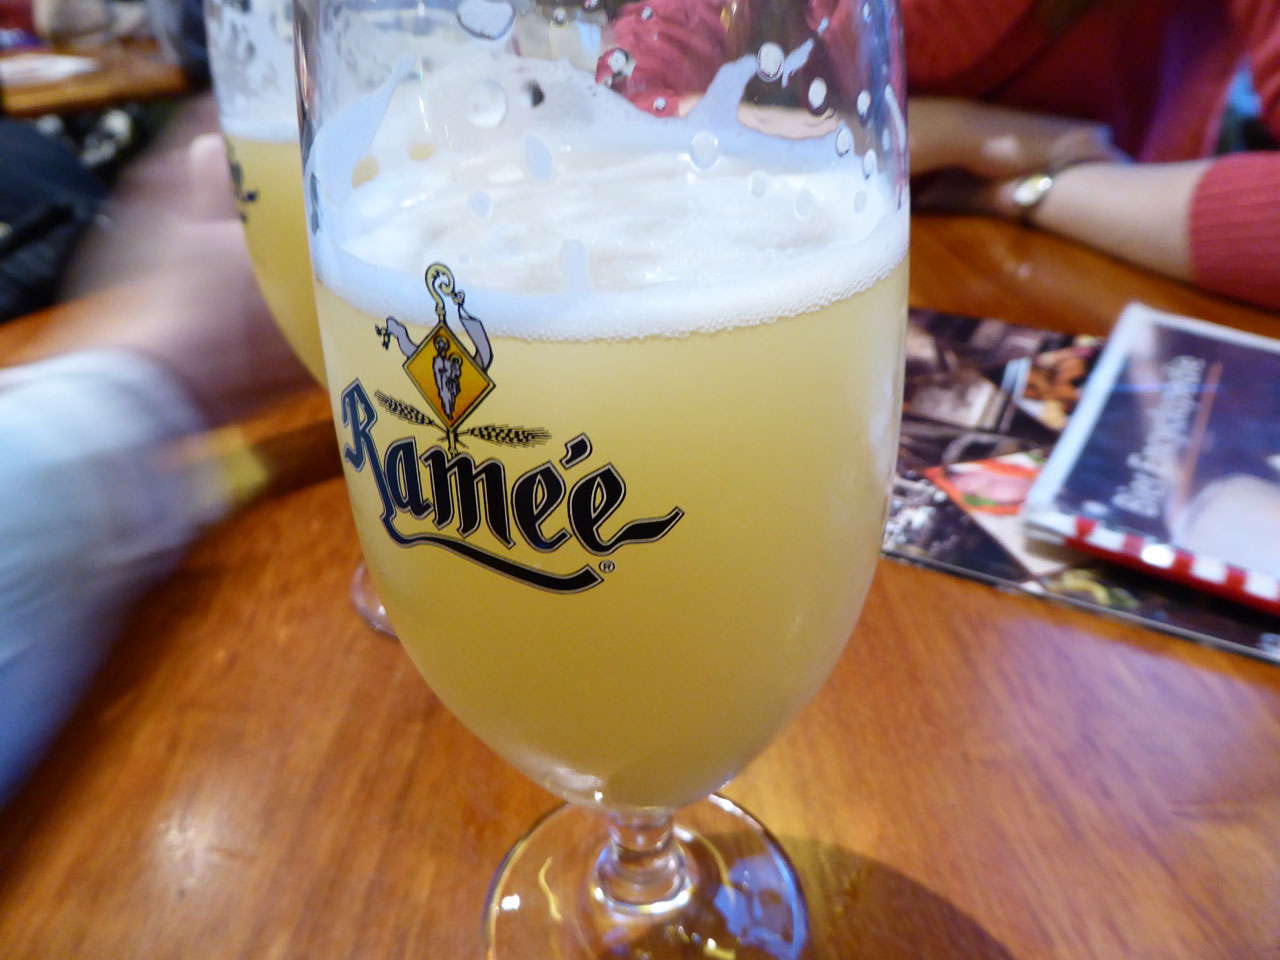 Drinking Belgian wheat beer at Bier Central, Antwerp